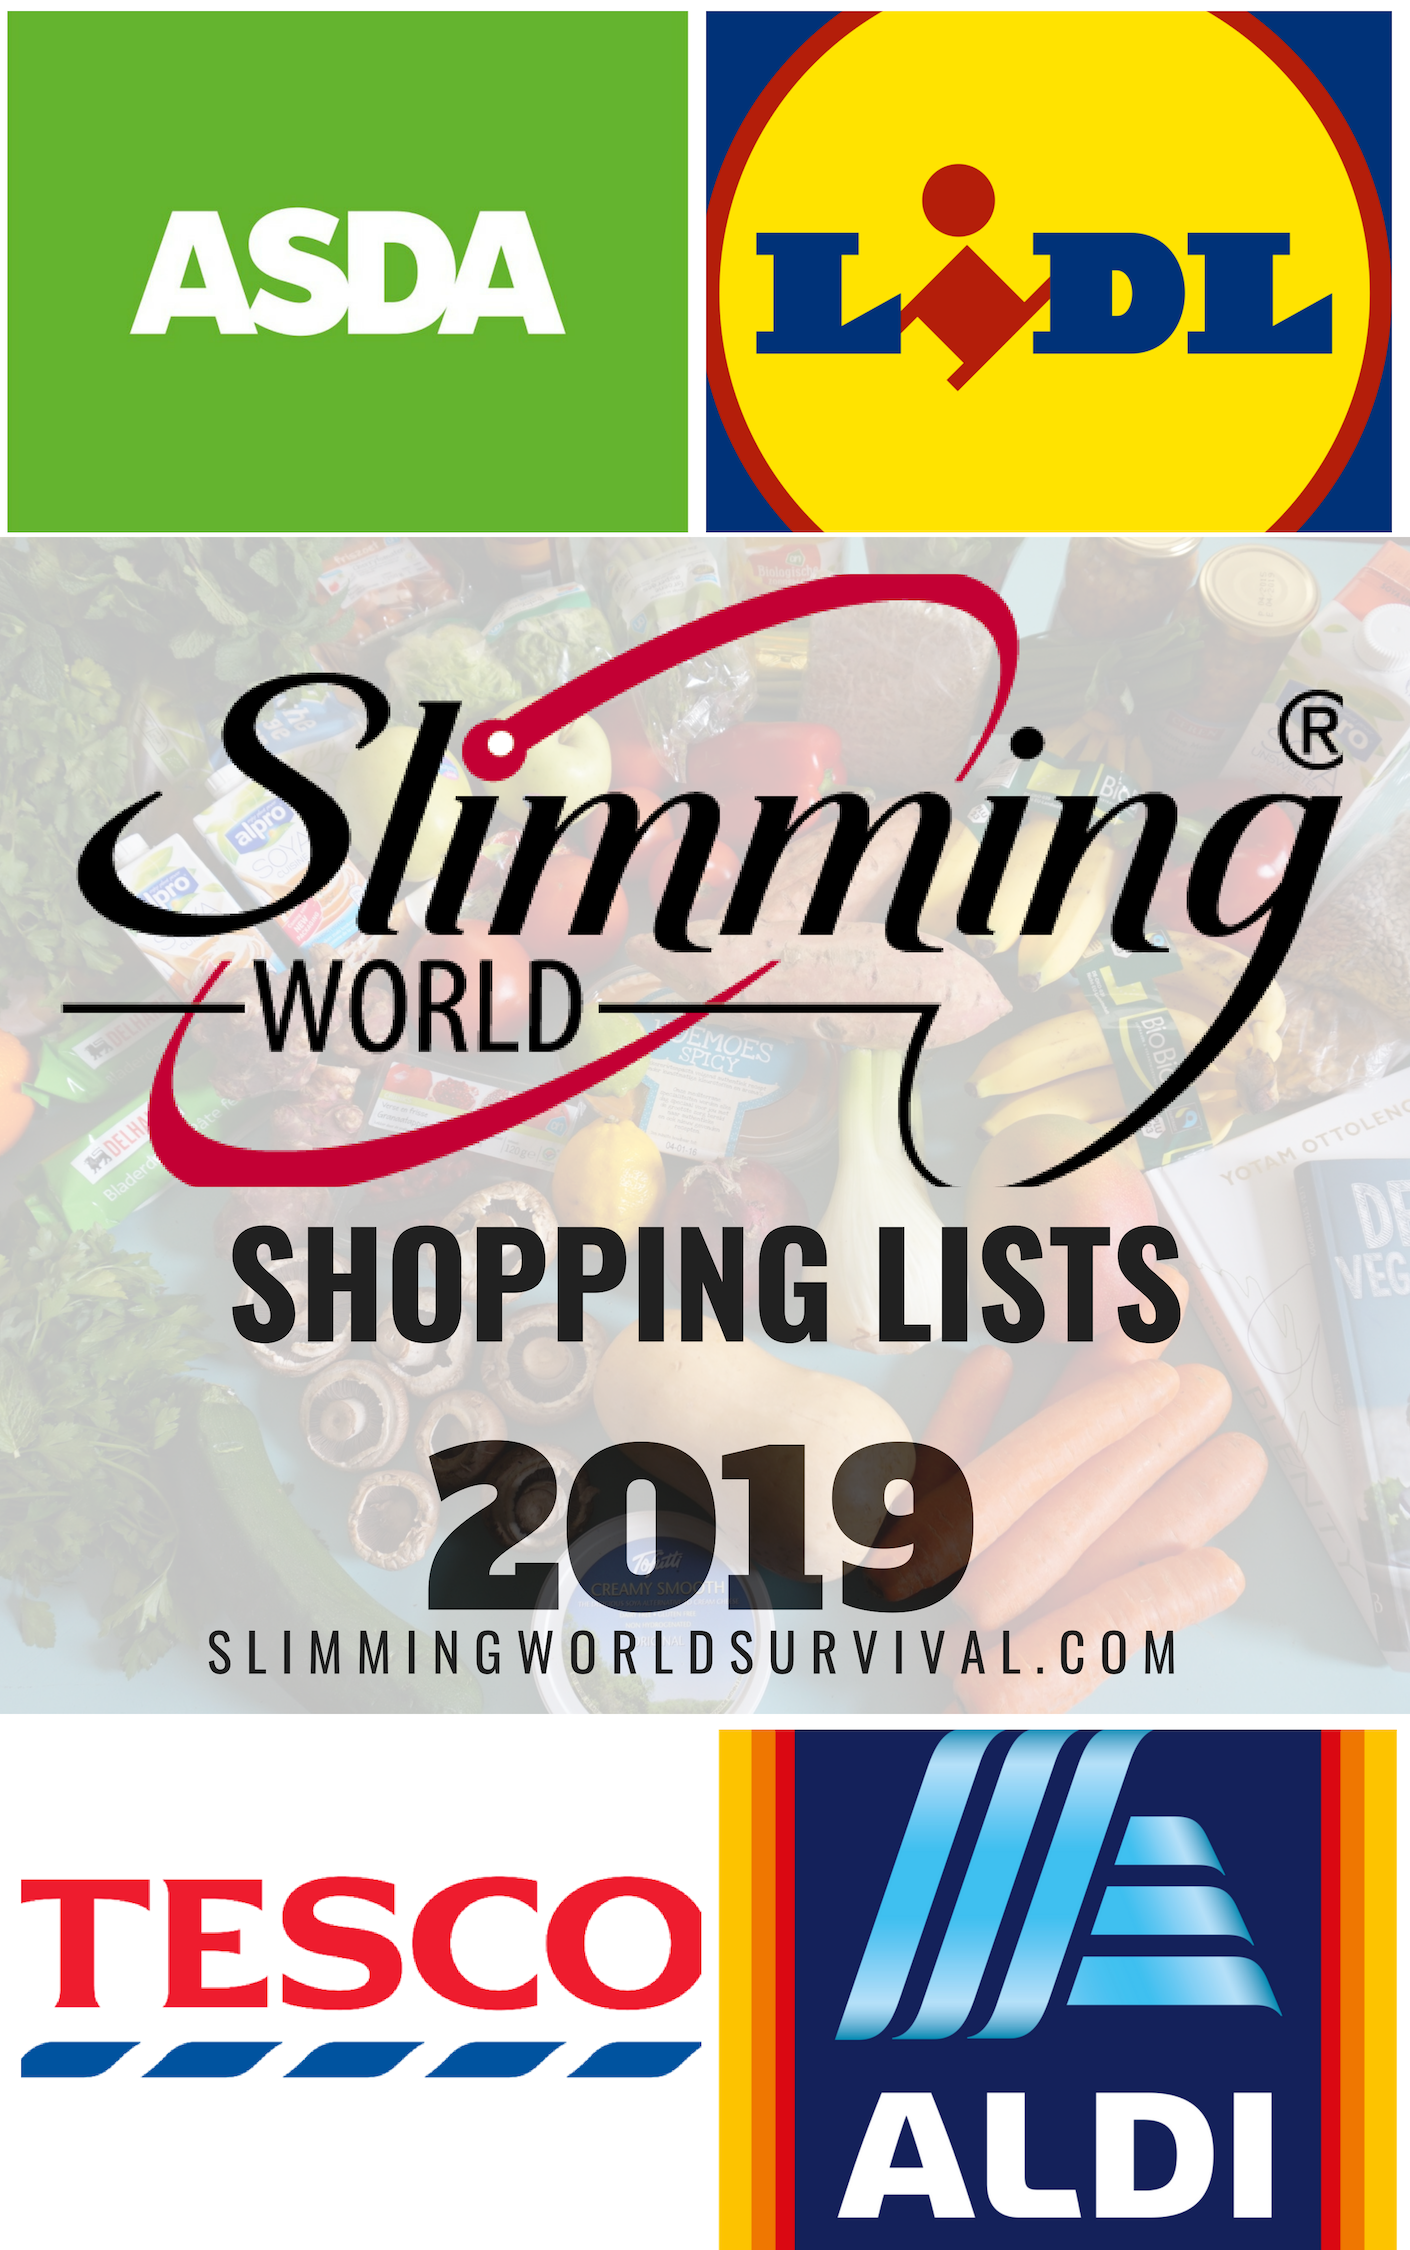 World Shopping Lists 2019 At , find the most up to date list of slimming world shopping lists for Aldi, Lidl, Tesco, Iceland, Asda and many more. Click the pin to start browsing!At , find the most up to date list of slimming world shopping lists for Aldi, Lidl, Tesco, Iceland, Asda and many more. Click the pin to start browsing!